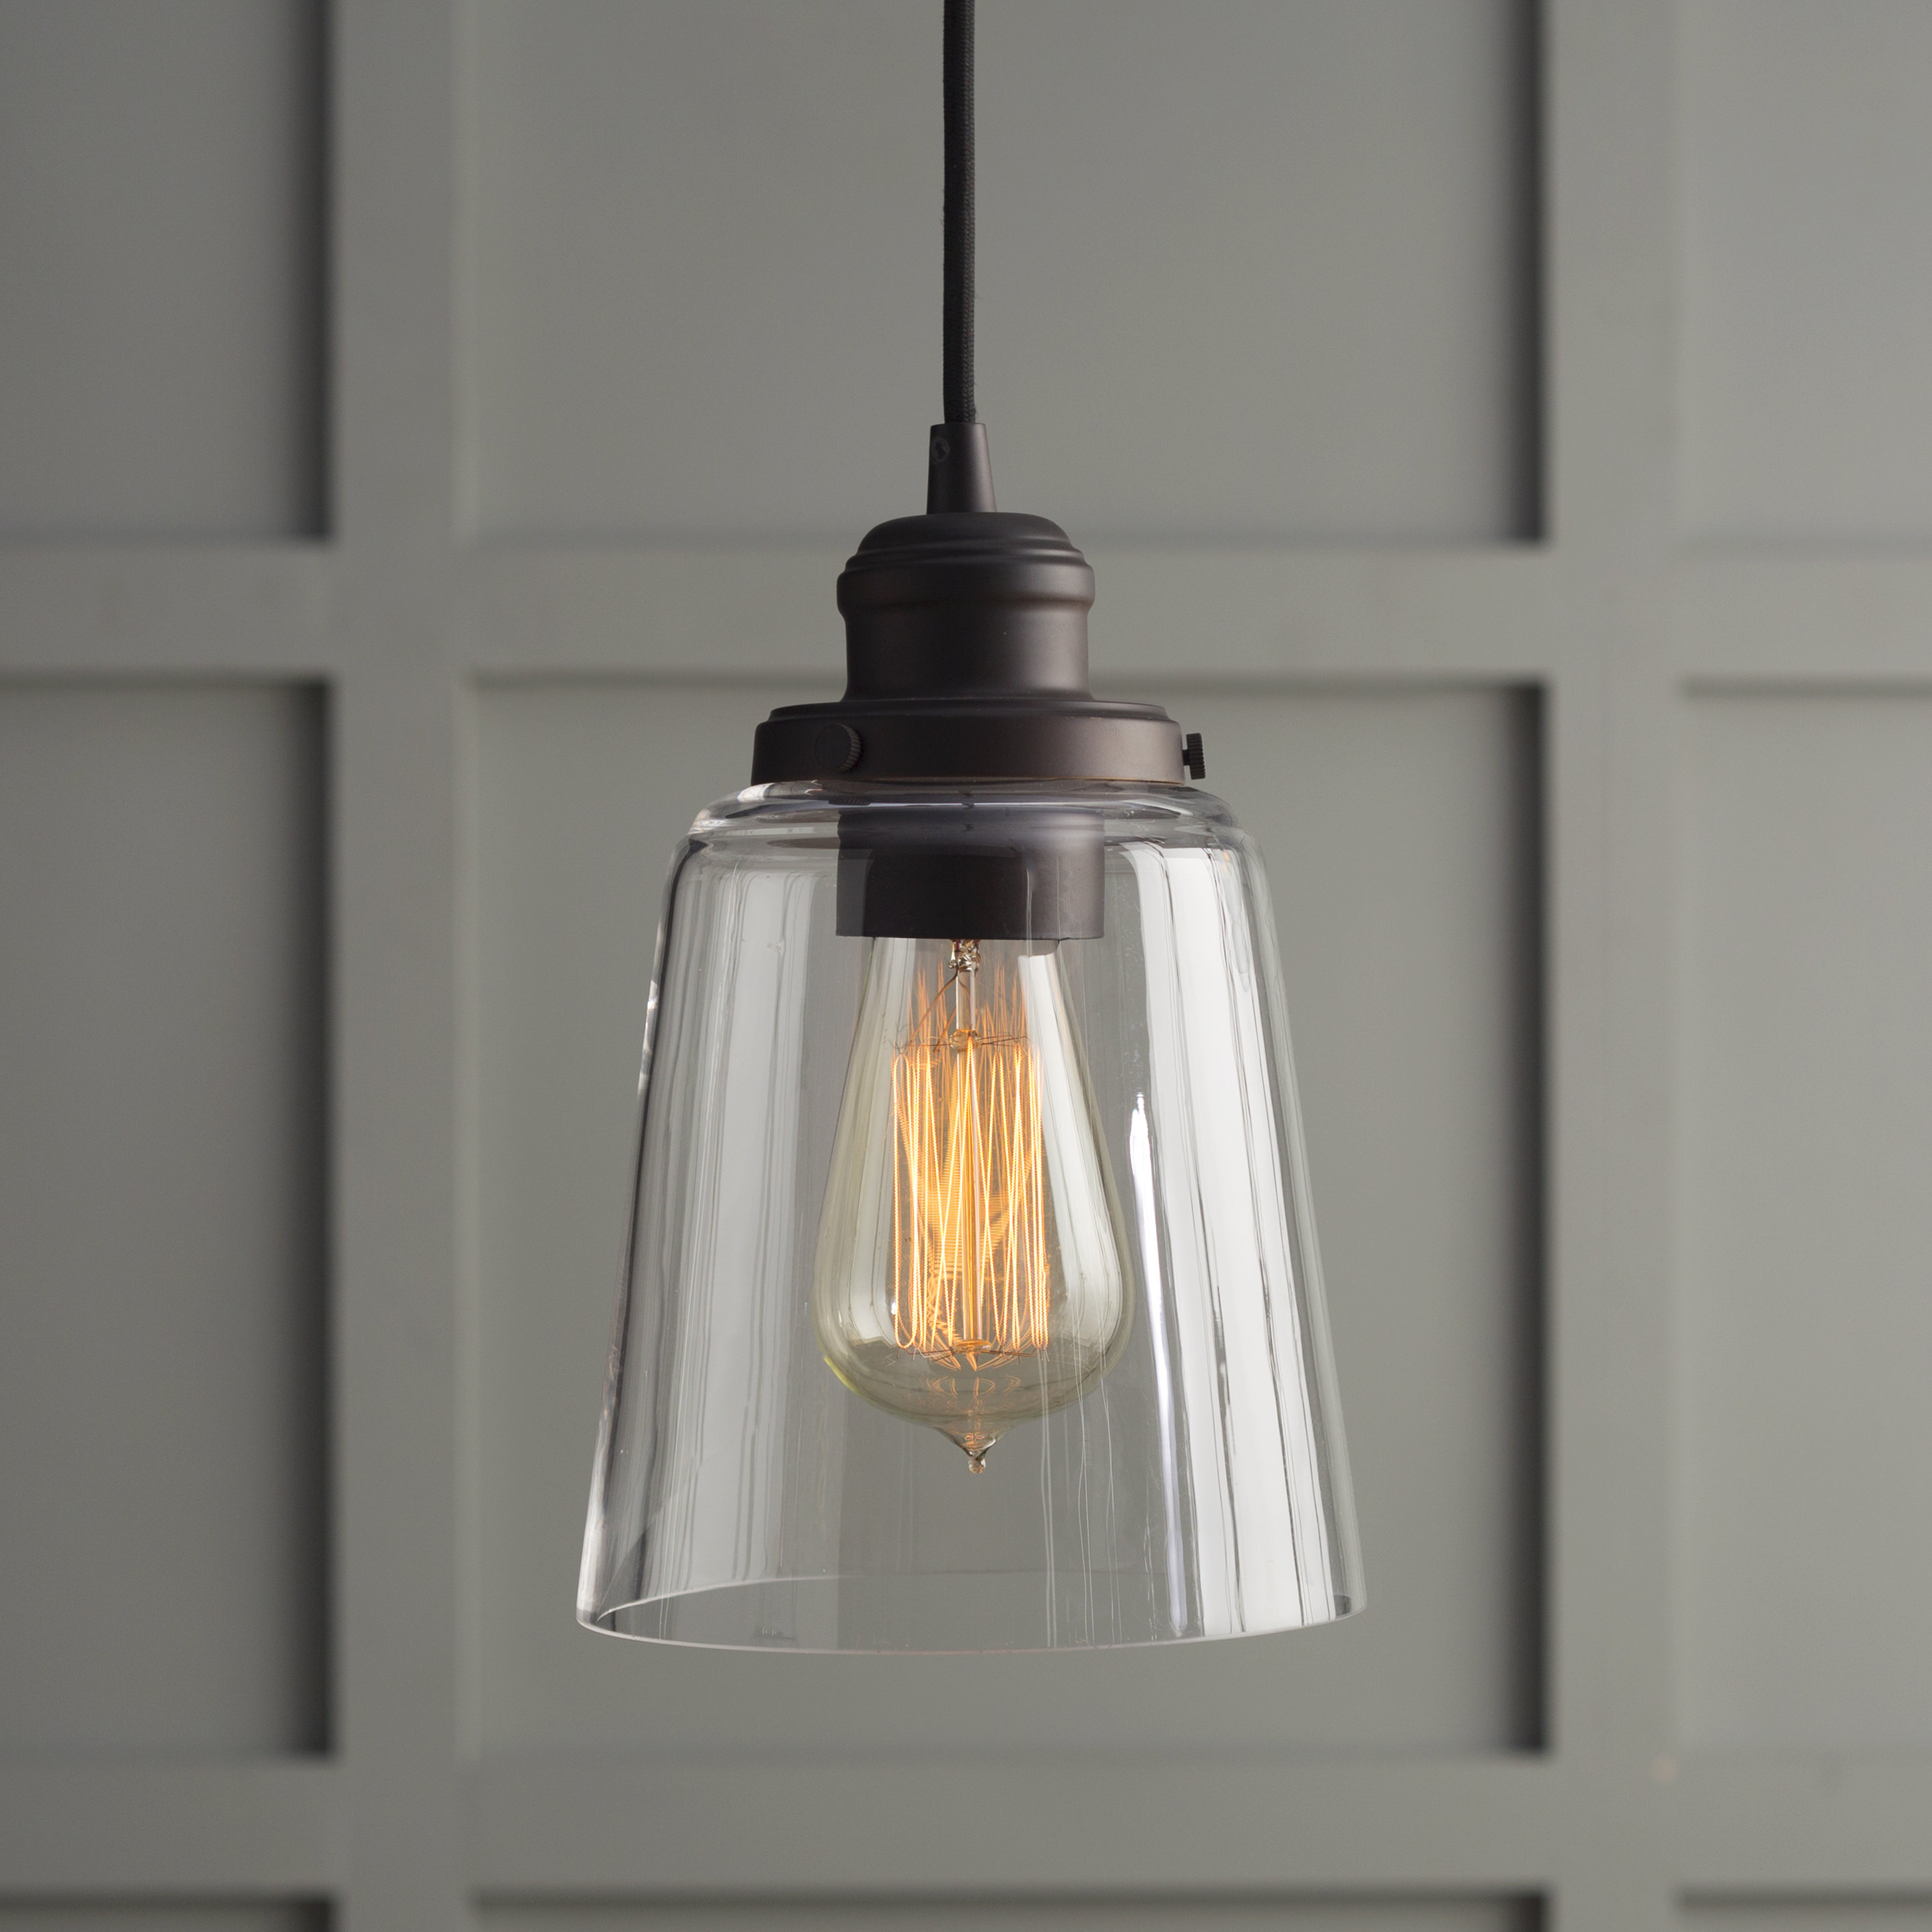 1 Light Single Bell Pendant With Regard To Finlayson Iron Gate 1 Light Single Bell Pendants (Gallery 2 of 30)